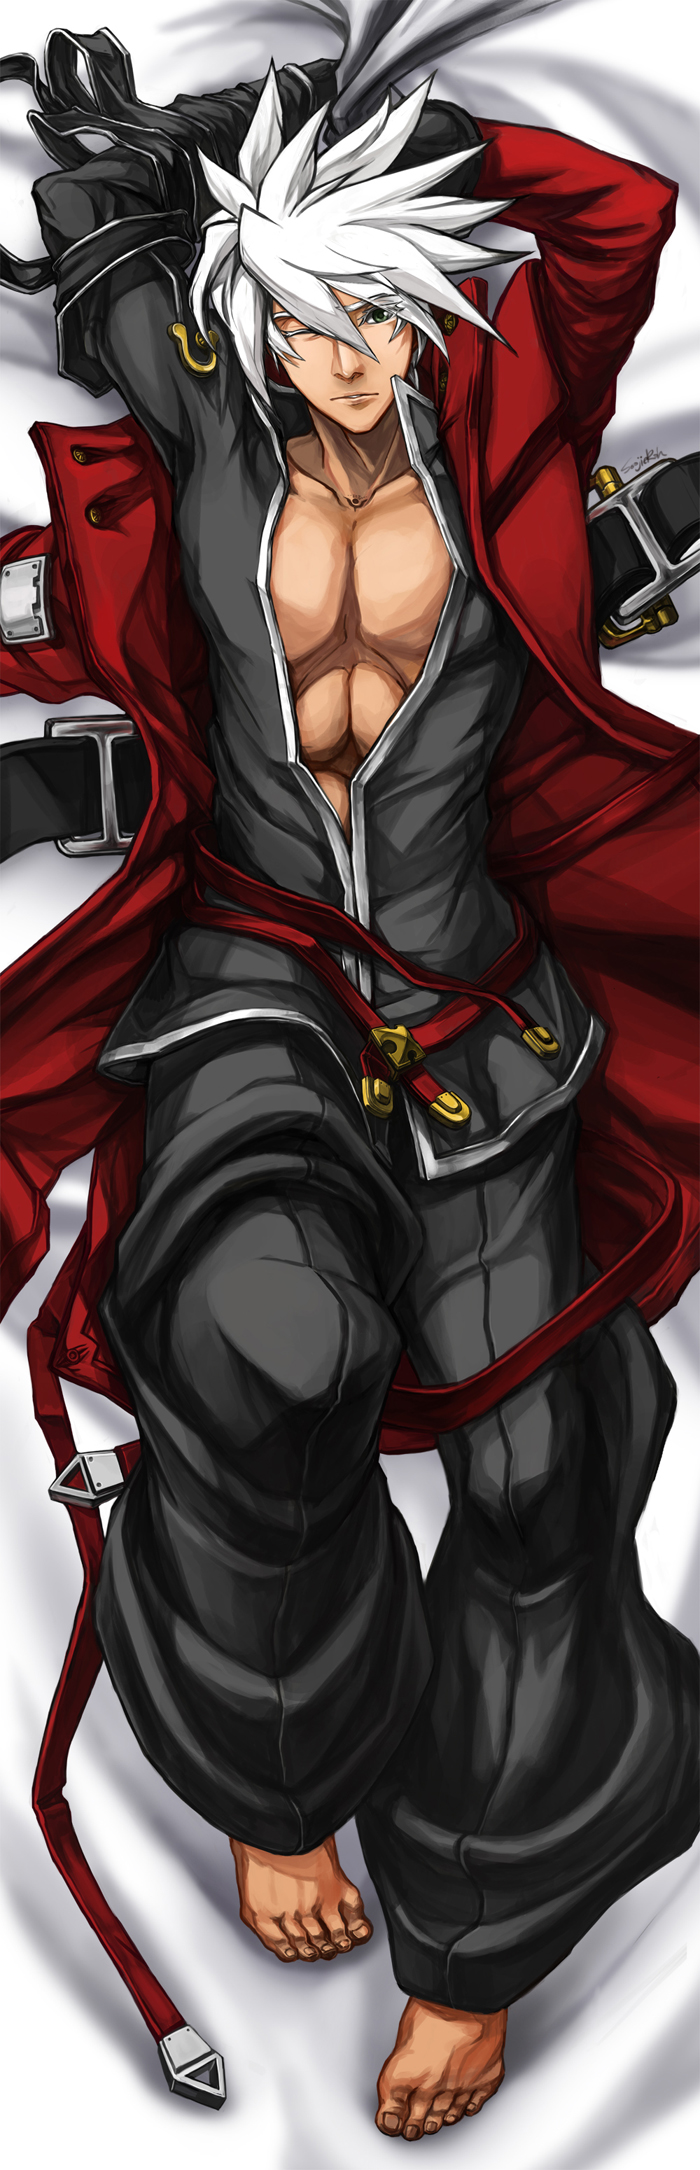 ragna the bloodedge (blazblue) drawn by soojie roh